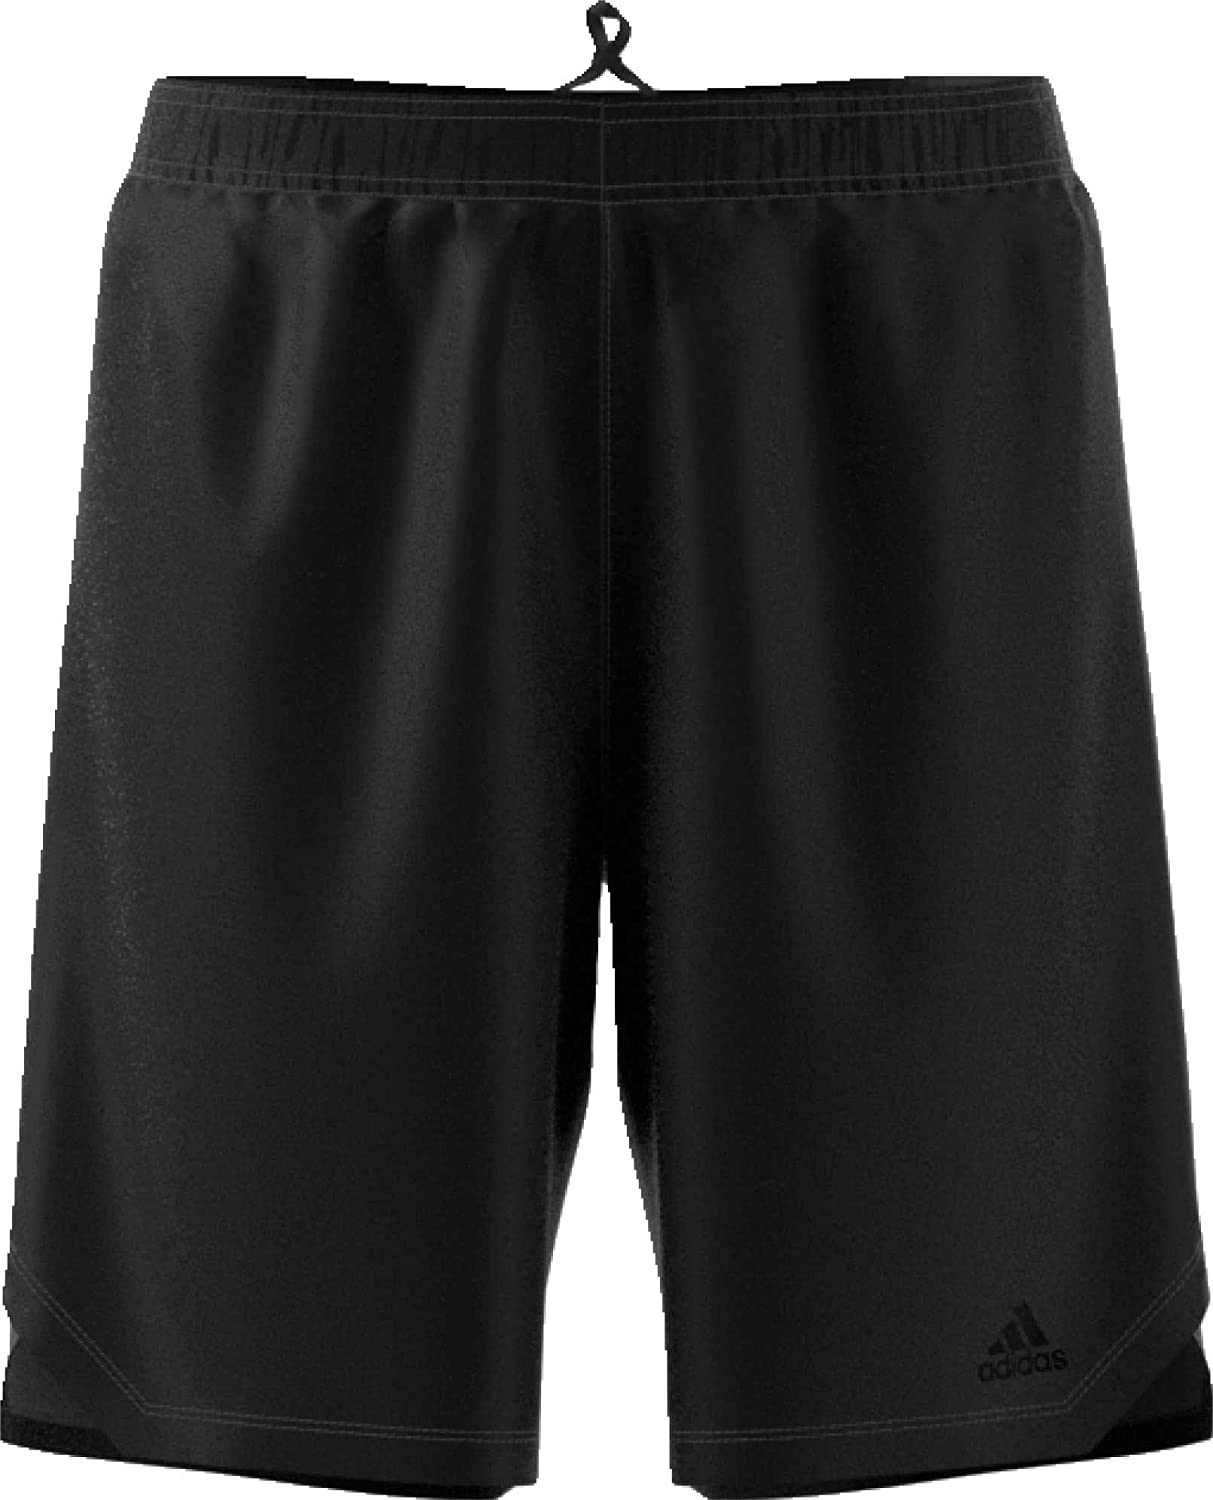 adidas Men's Axis Knit Training Shorts (Black, L)